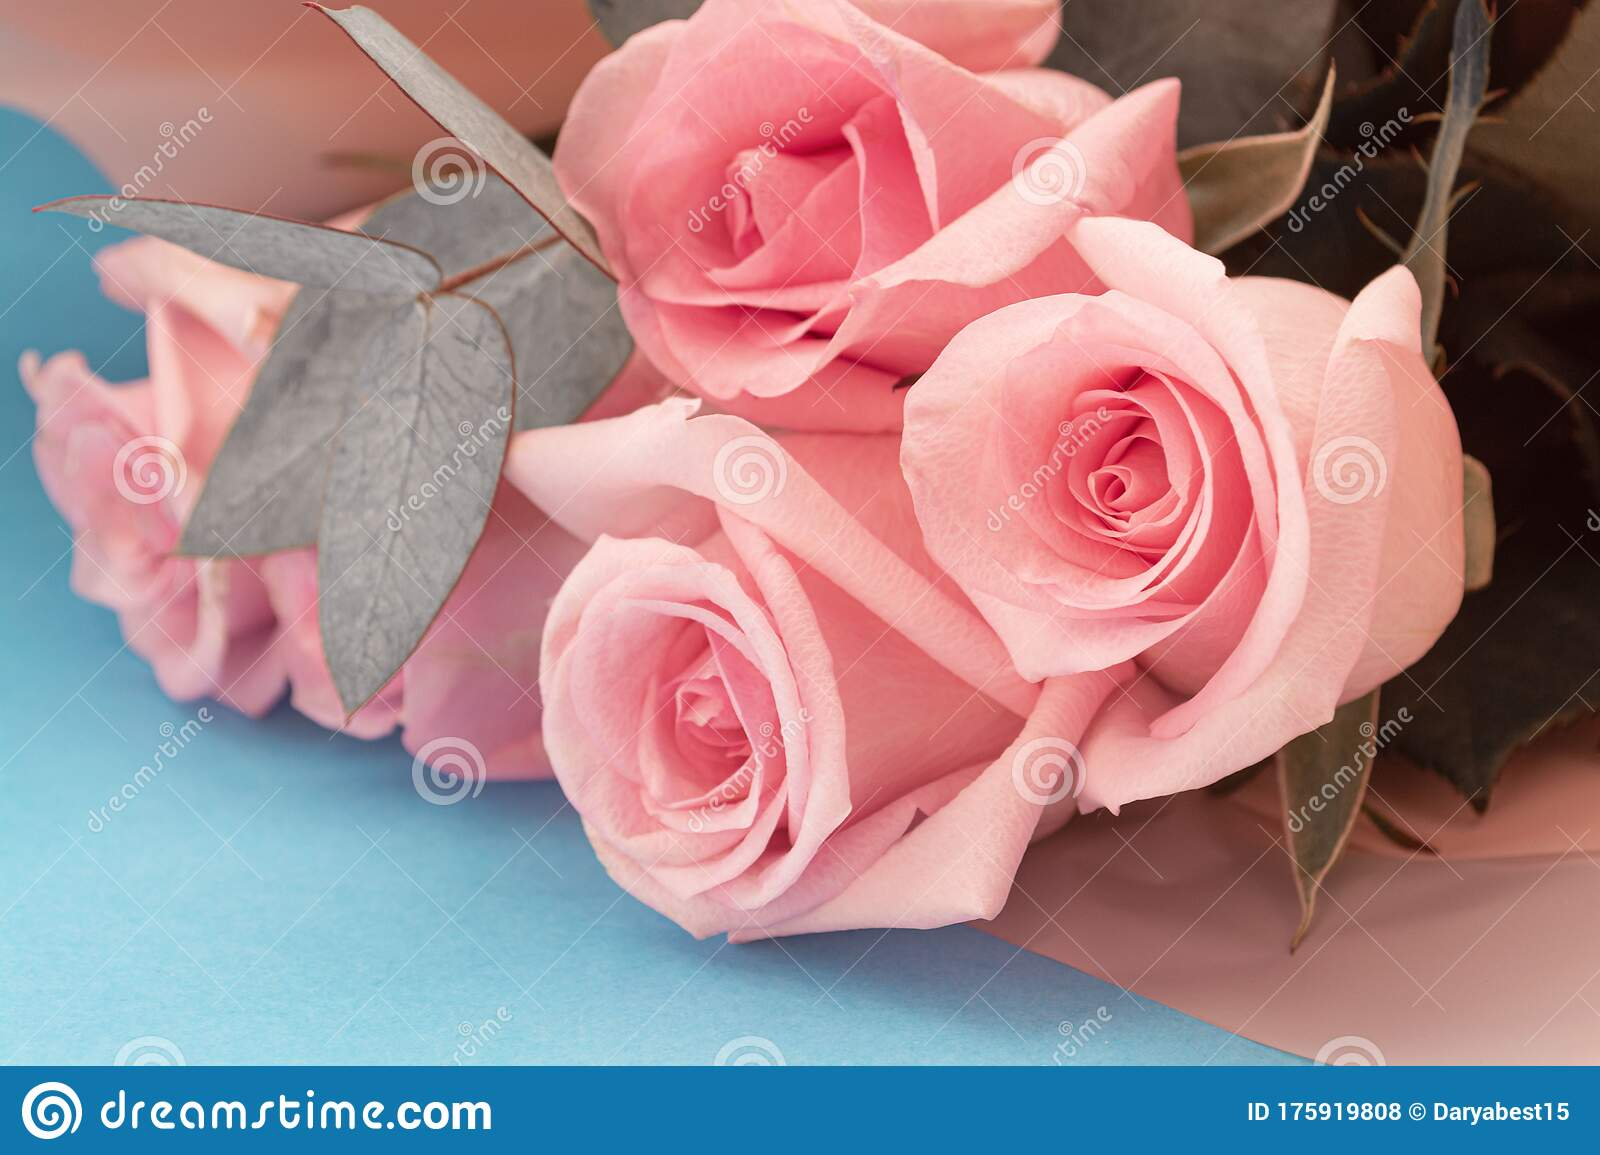 Soft Dusky Pink Color Roses Aesthetic Bouquet With Eucalyptus Brunches On Blue Background Stock Photo Image Of Aesthetic Blossom 175919808